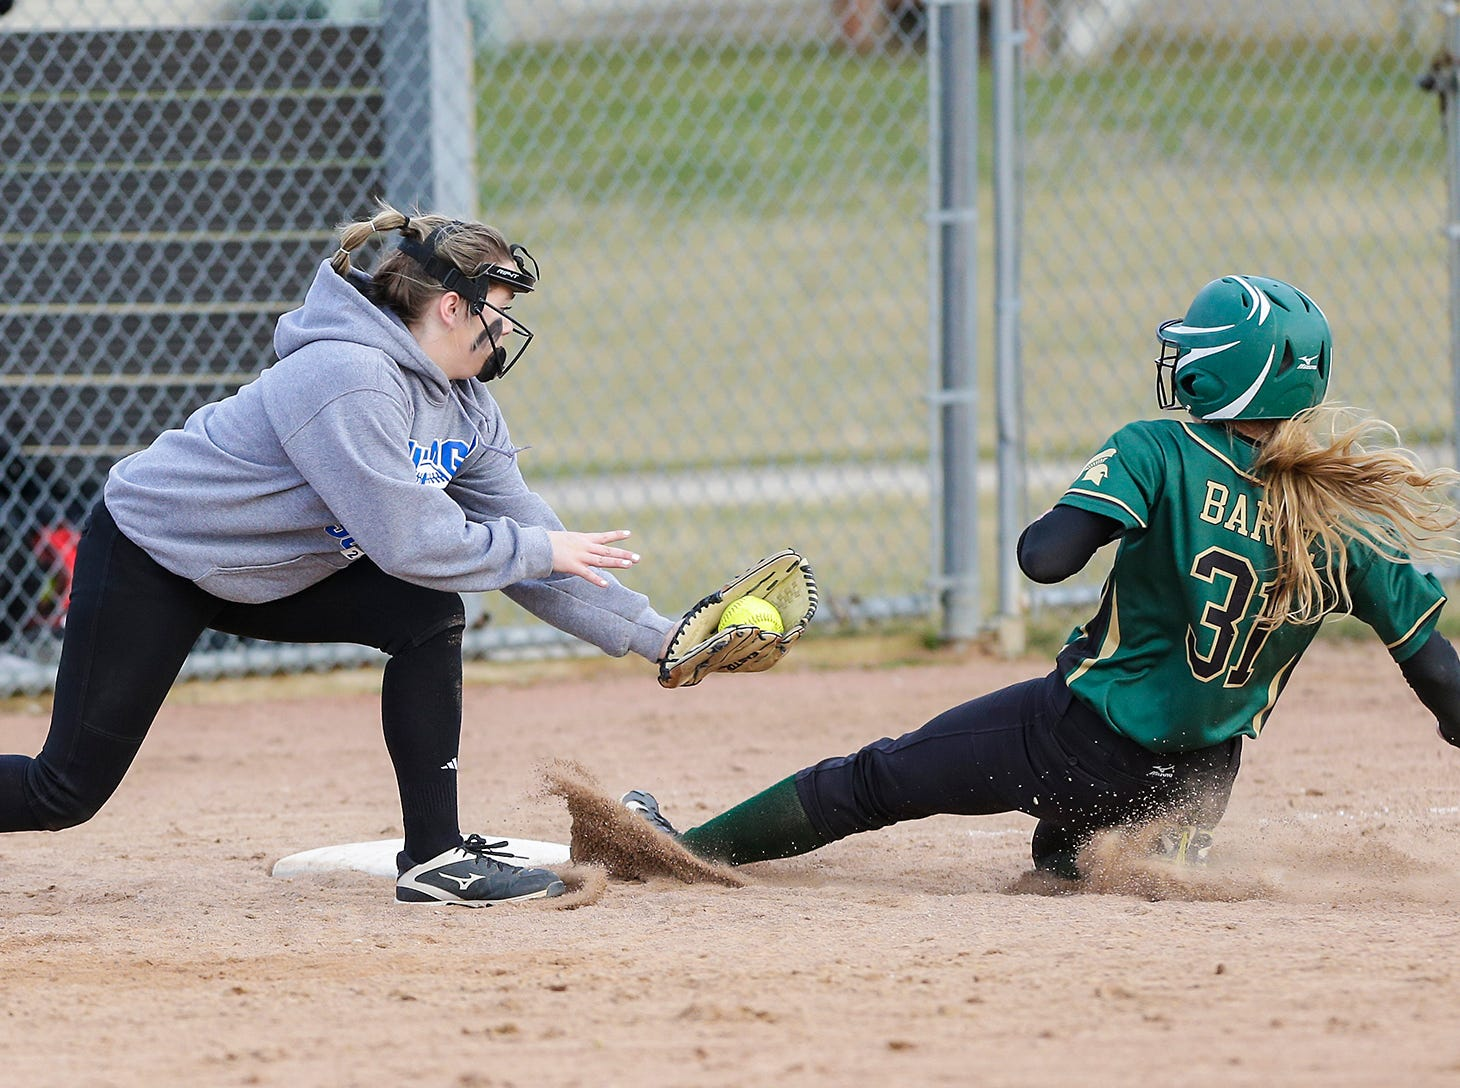 Laconia High School softball's Hailey Bartz slides into third base safe against Winnebago Lutheran Academy April 9, 2019 during their game in Fond du Lac, Wis. Laconia won the game 25-9. Doug Raflik/USA TODAY NETWORK-Wisconsin